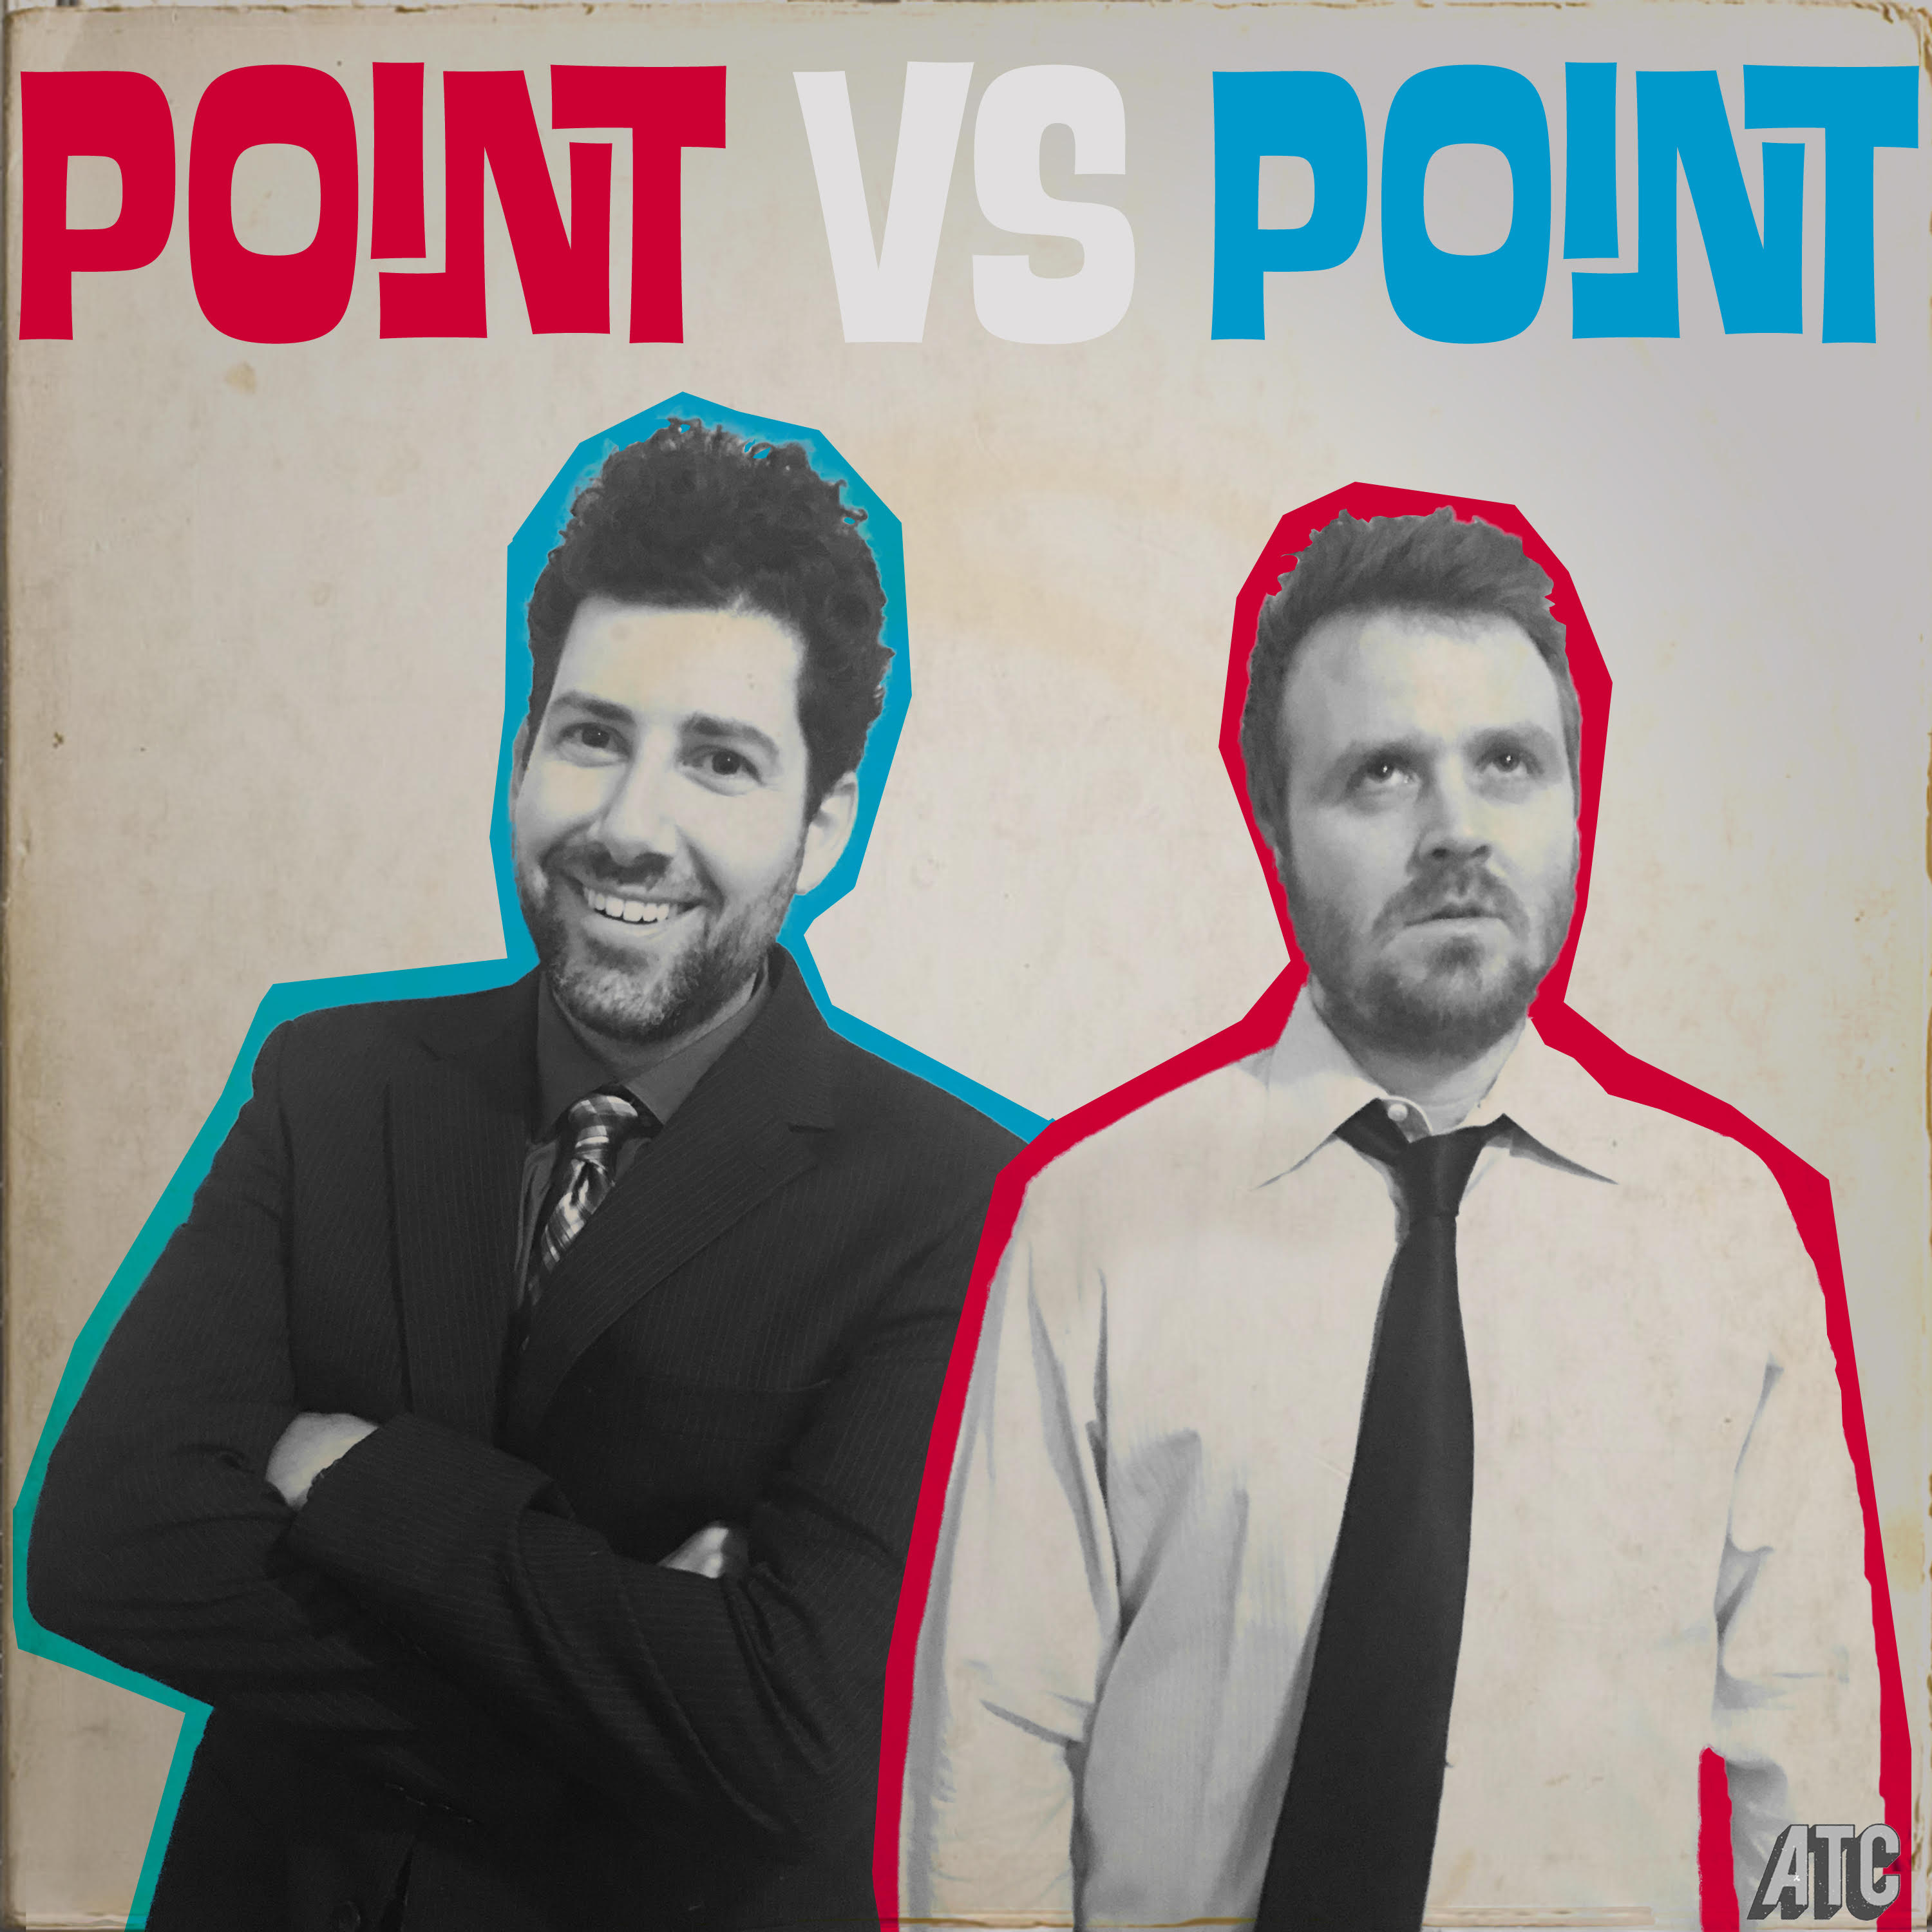 Point vs Point